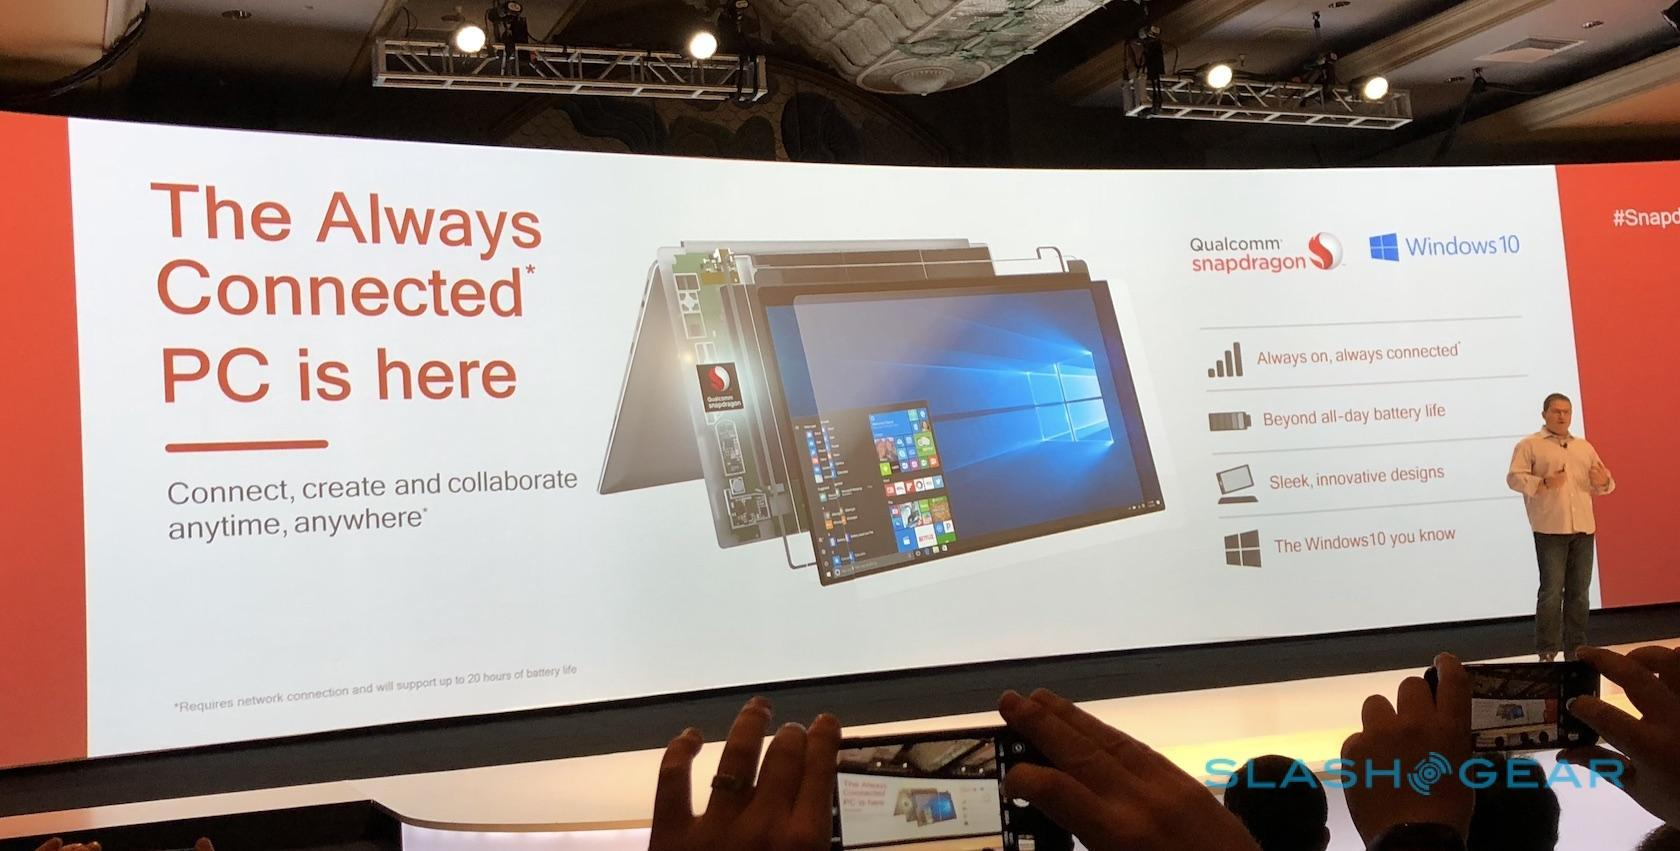 Microsoft has a brighter future in mobile computing with Windows on